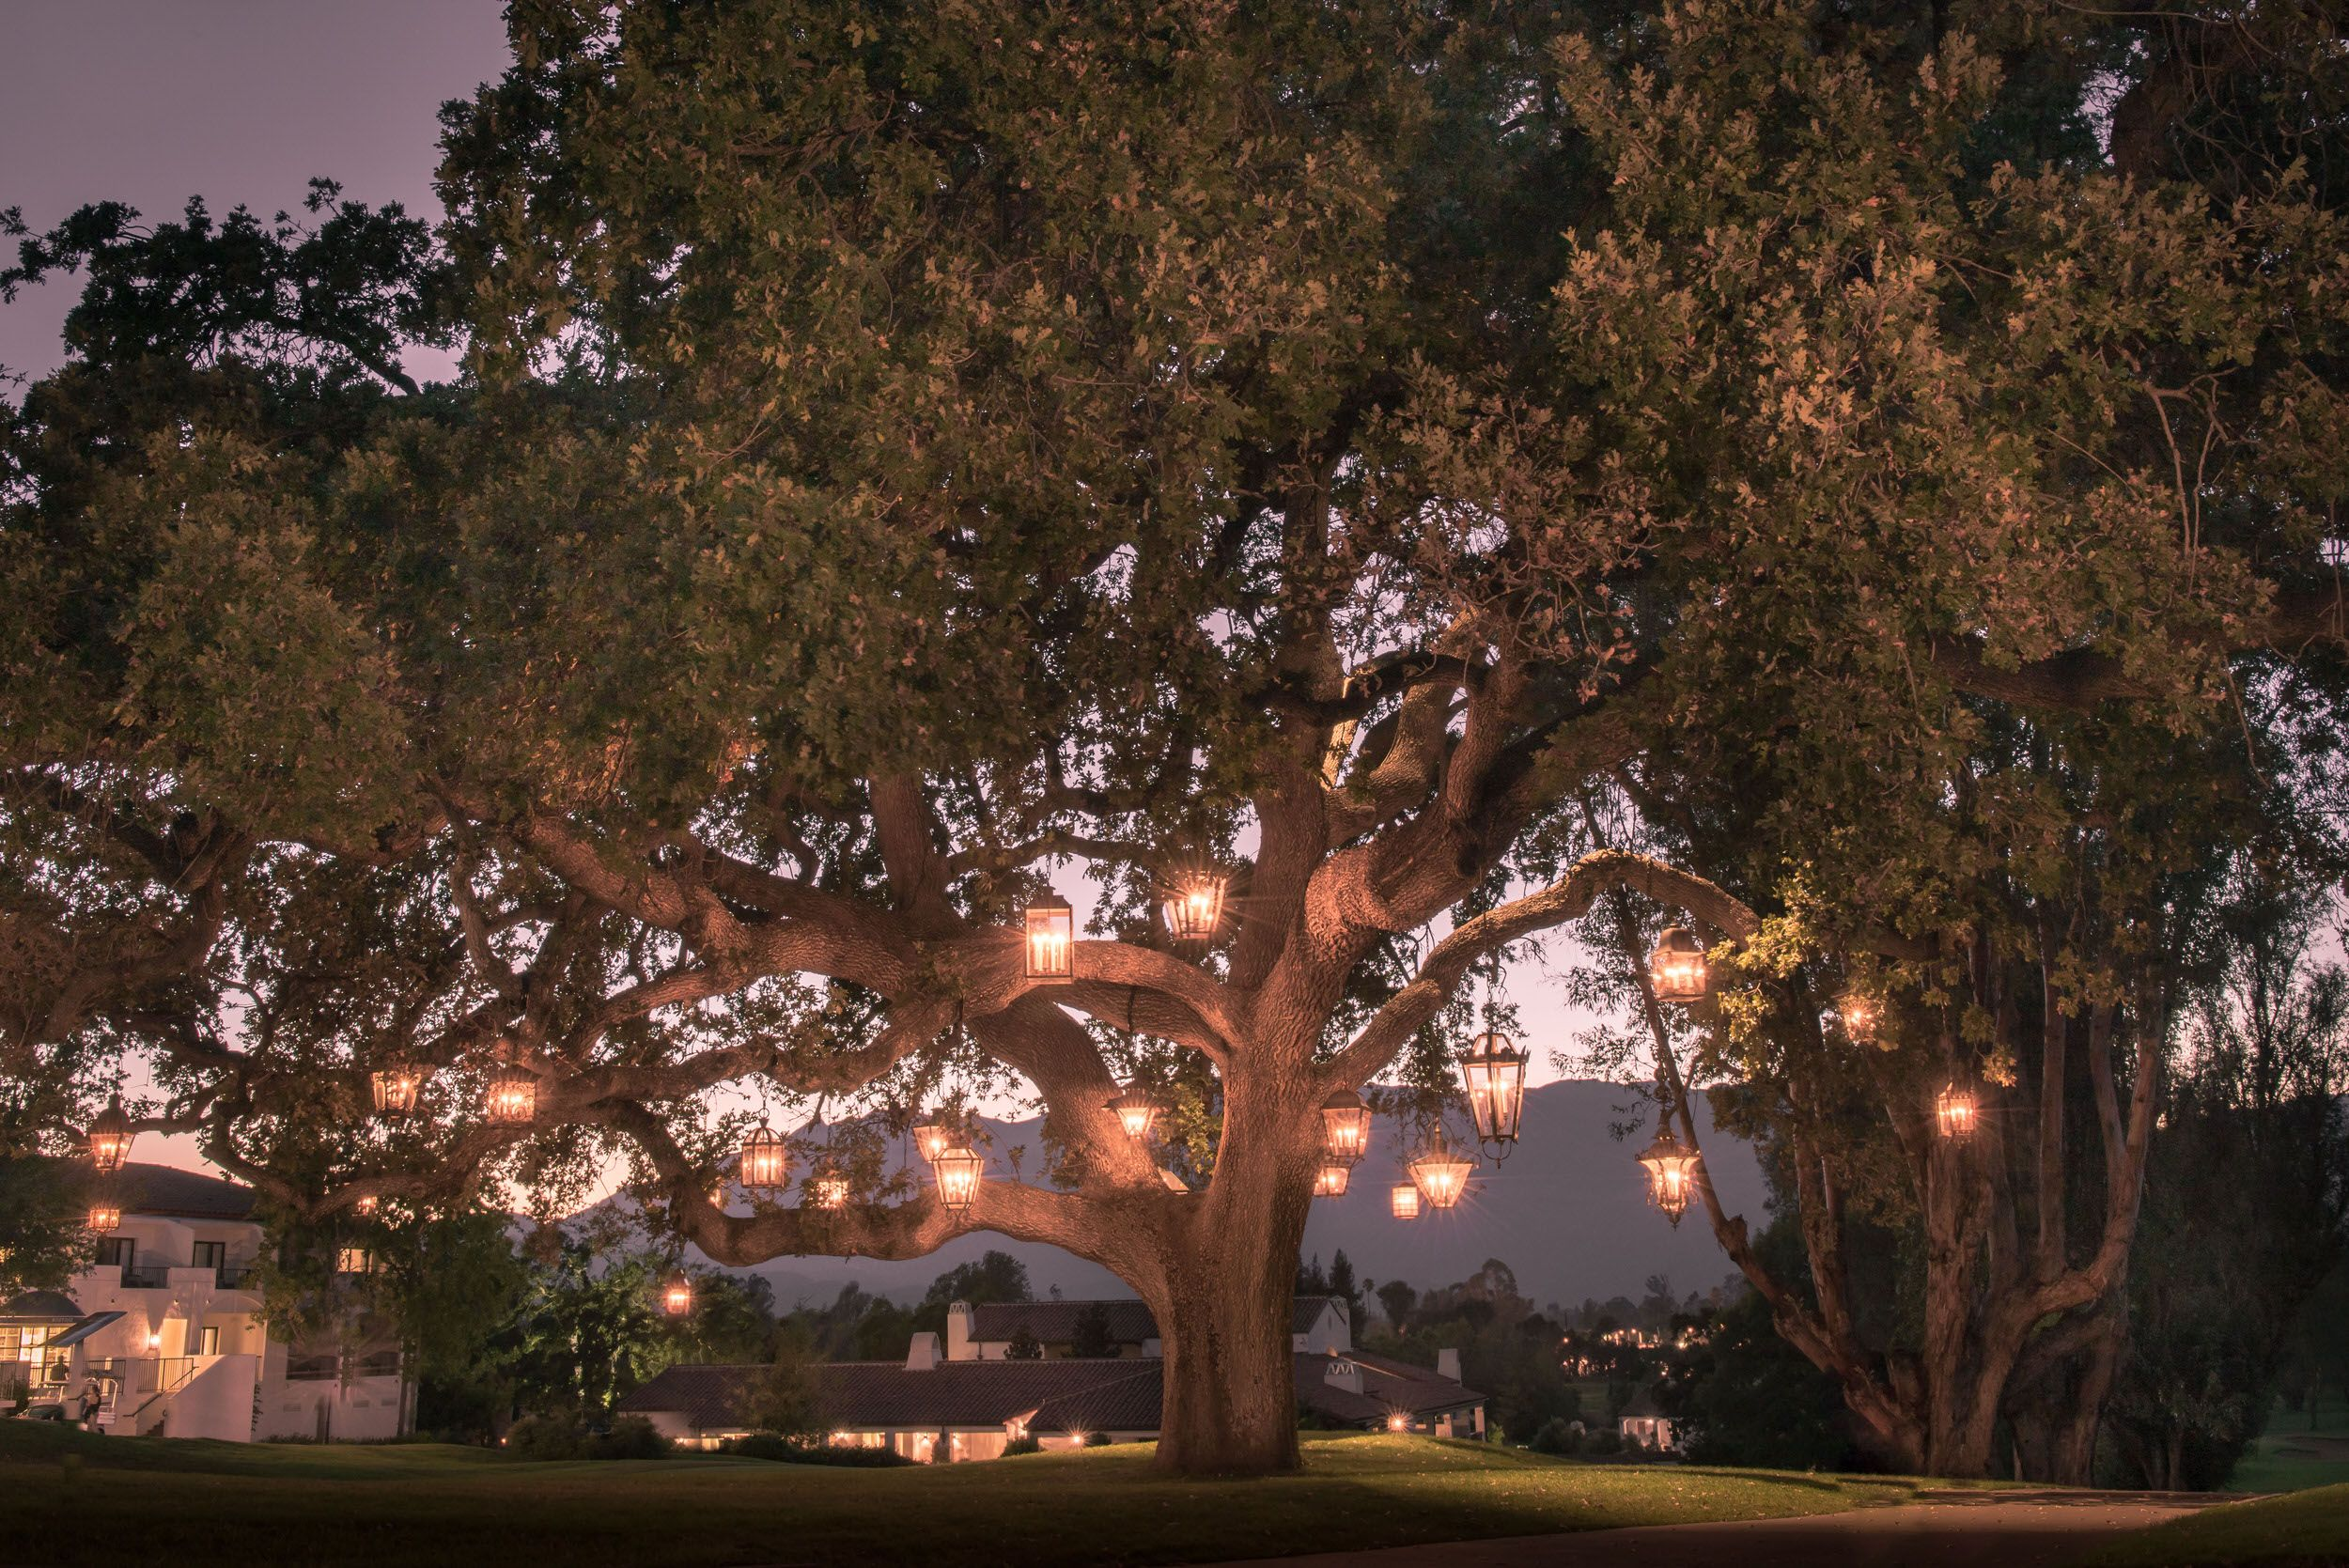 Hanging lights wedding decor  My Girls Weekend at The Ojai Valley Inn  s o m e d a y  Pinterest